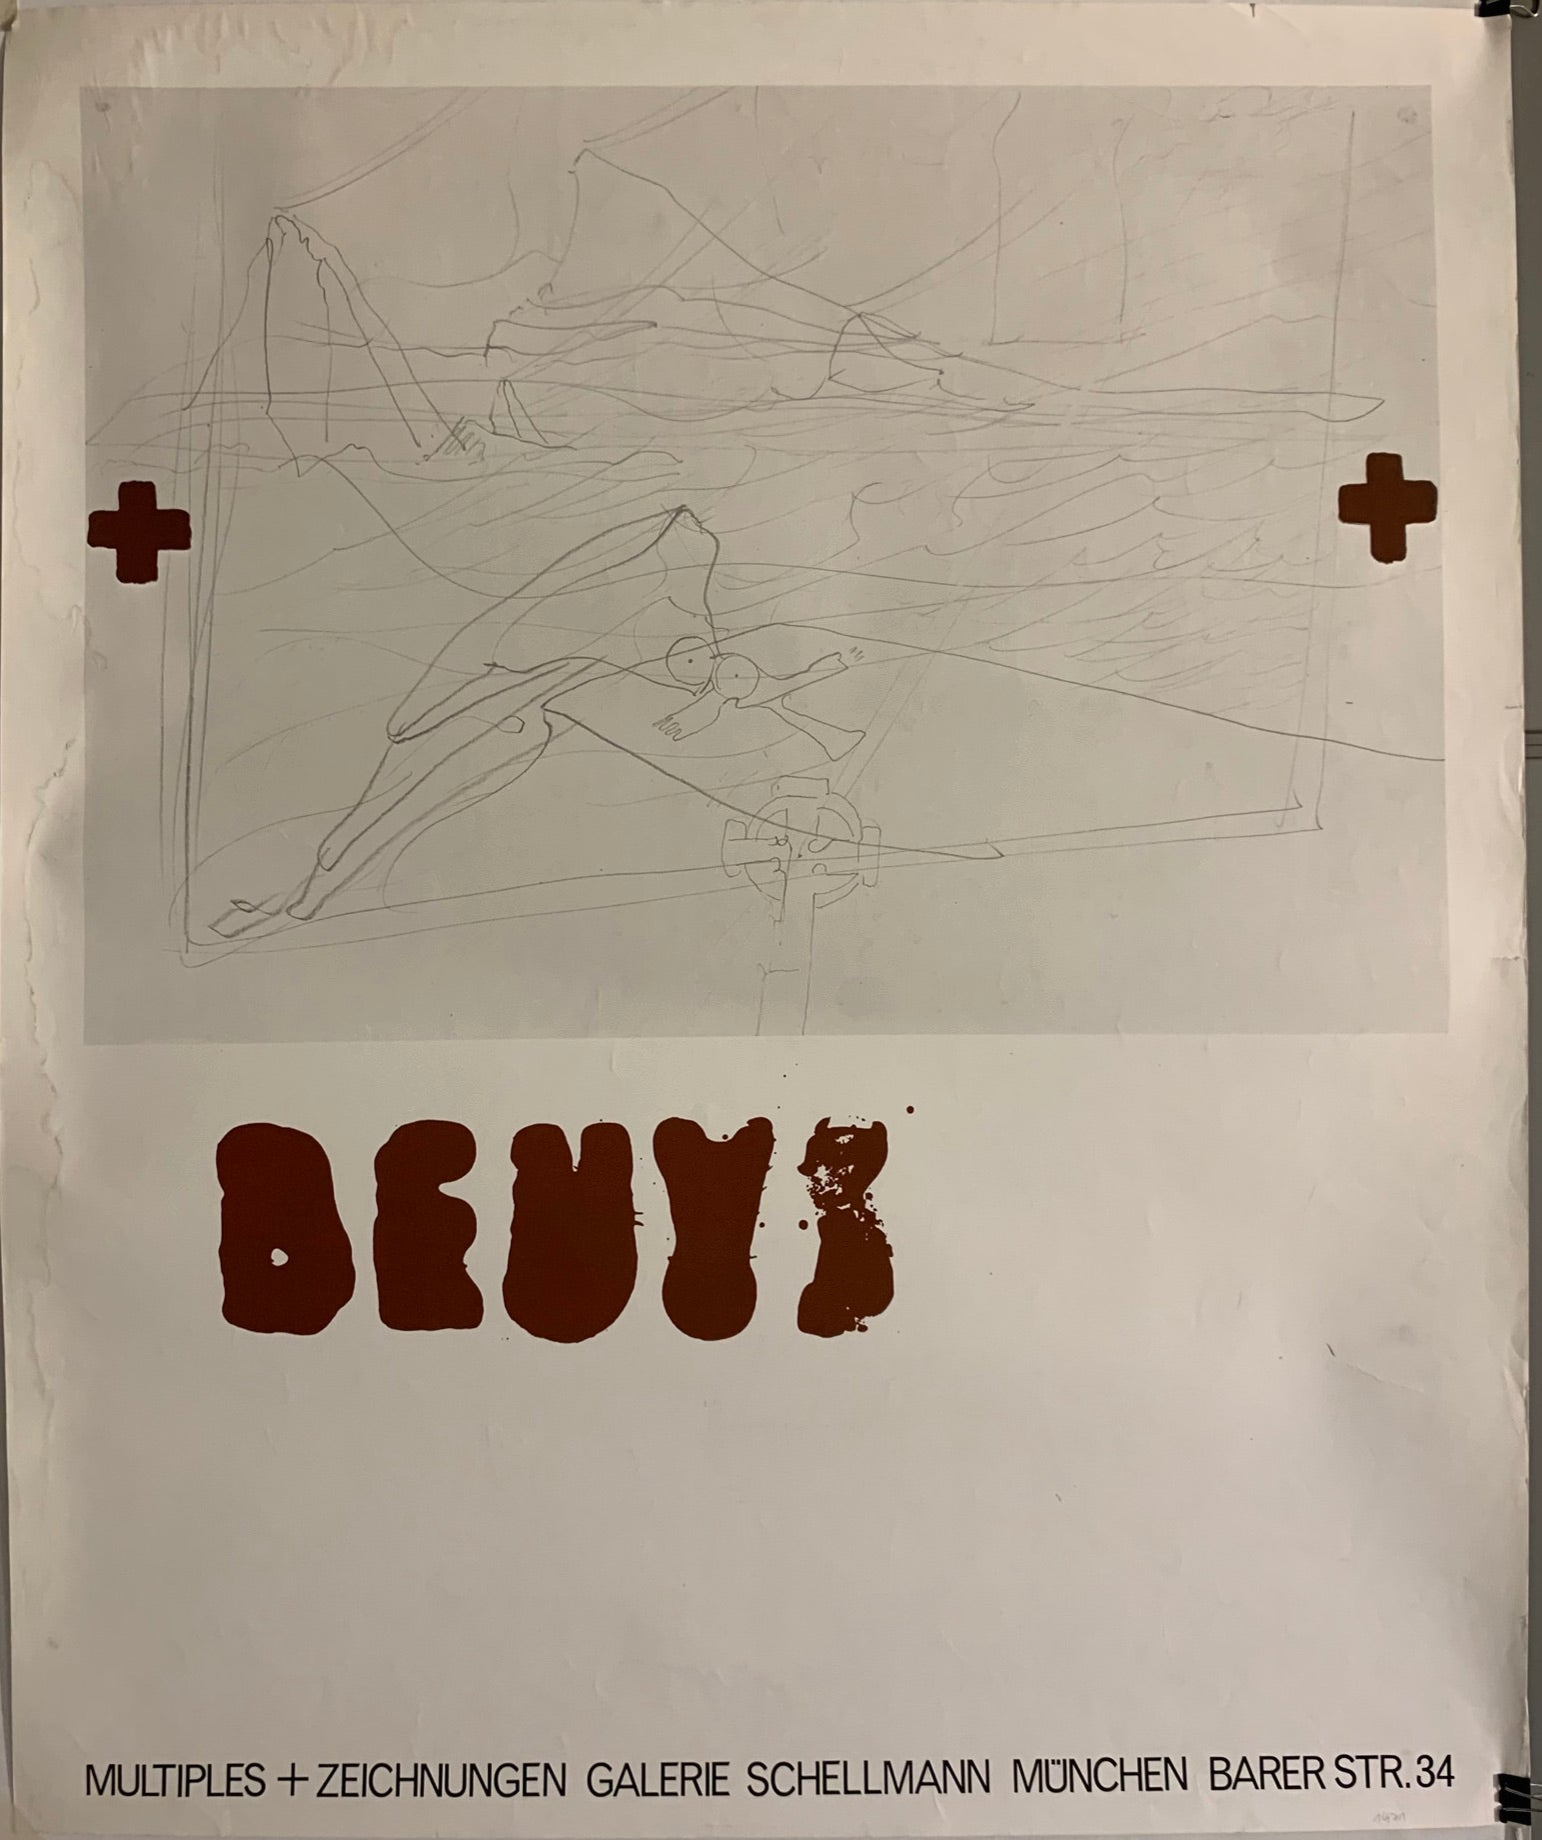 Poster of an abstract Beuys pencil sketch